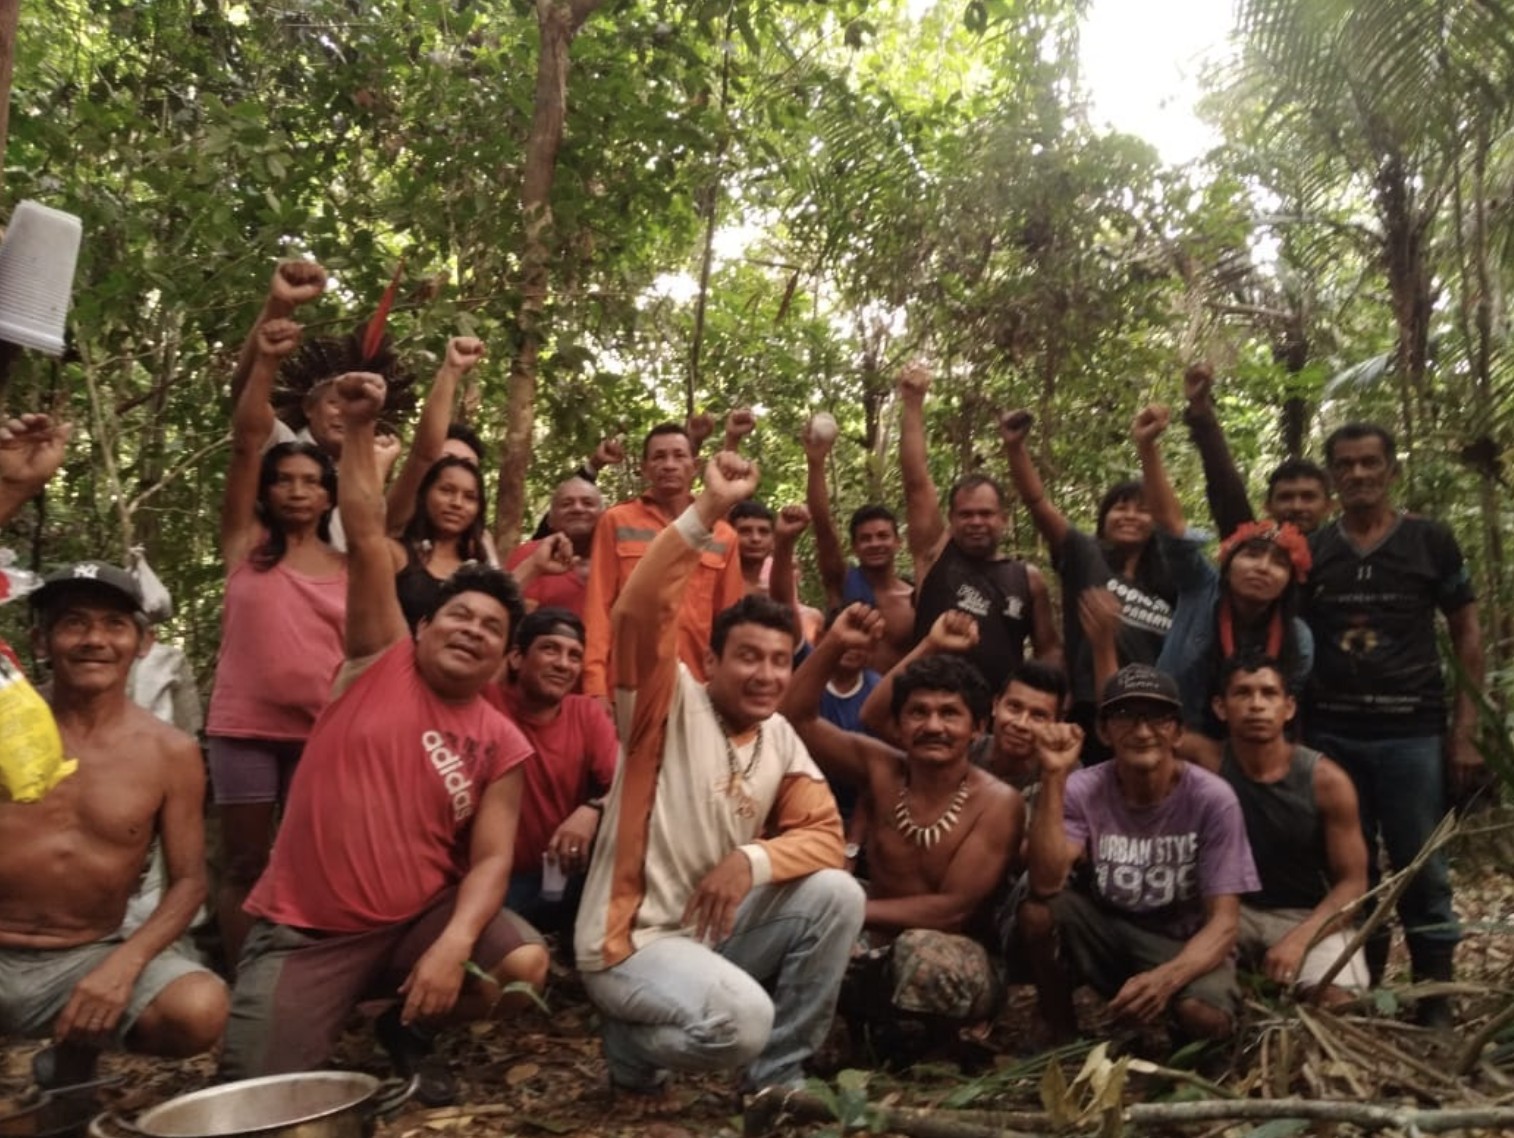 A group of Tupinambá community members kneeling and standing for a group photo in the forest all raising their right fists in solidarity